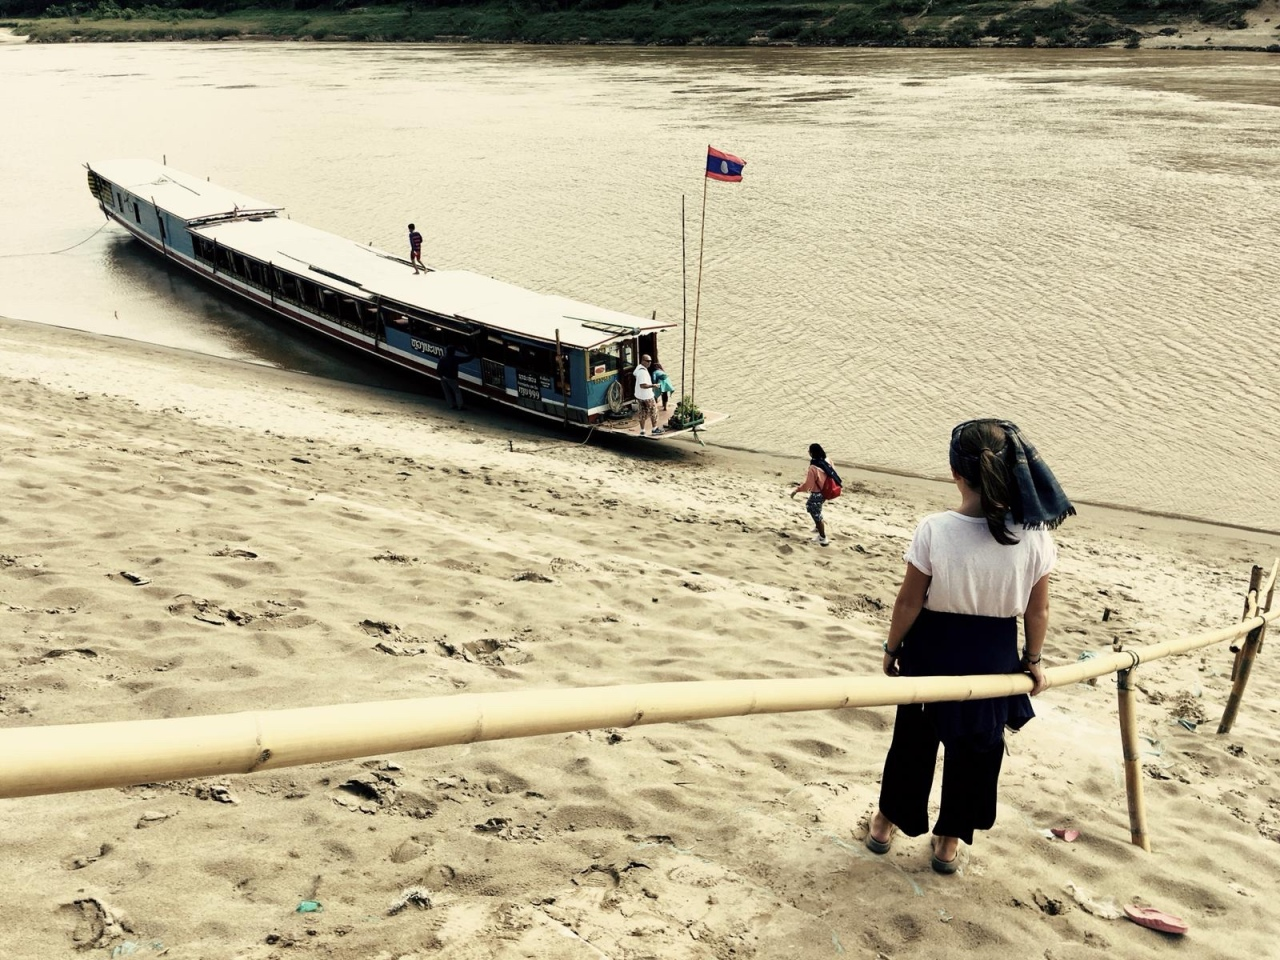 Slowboat to Laos, by Wayne